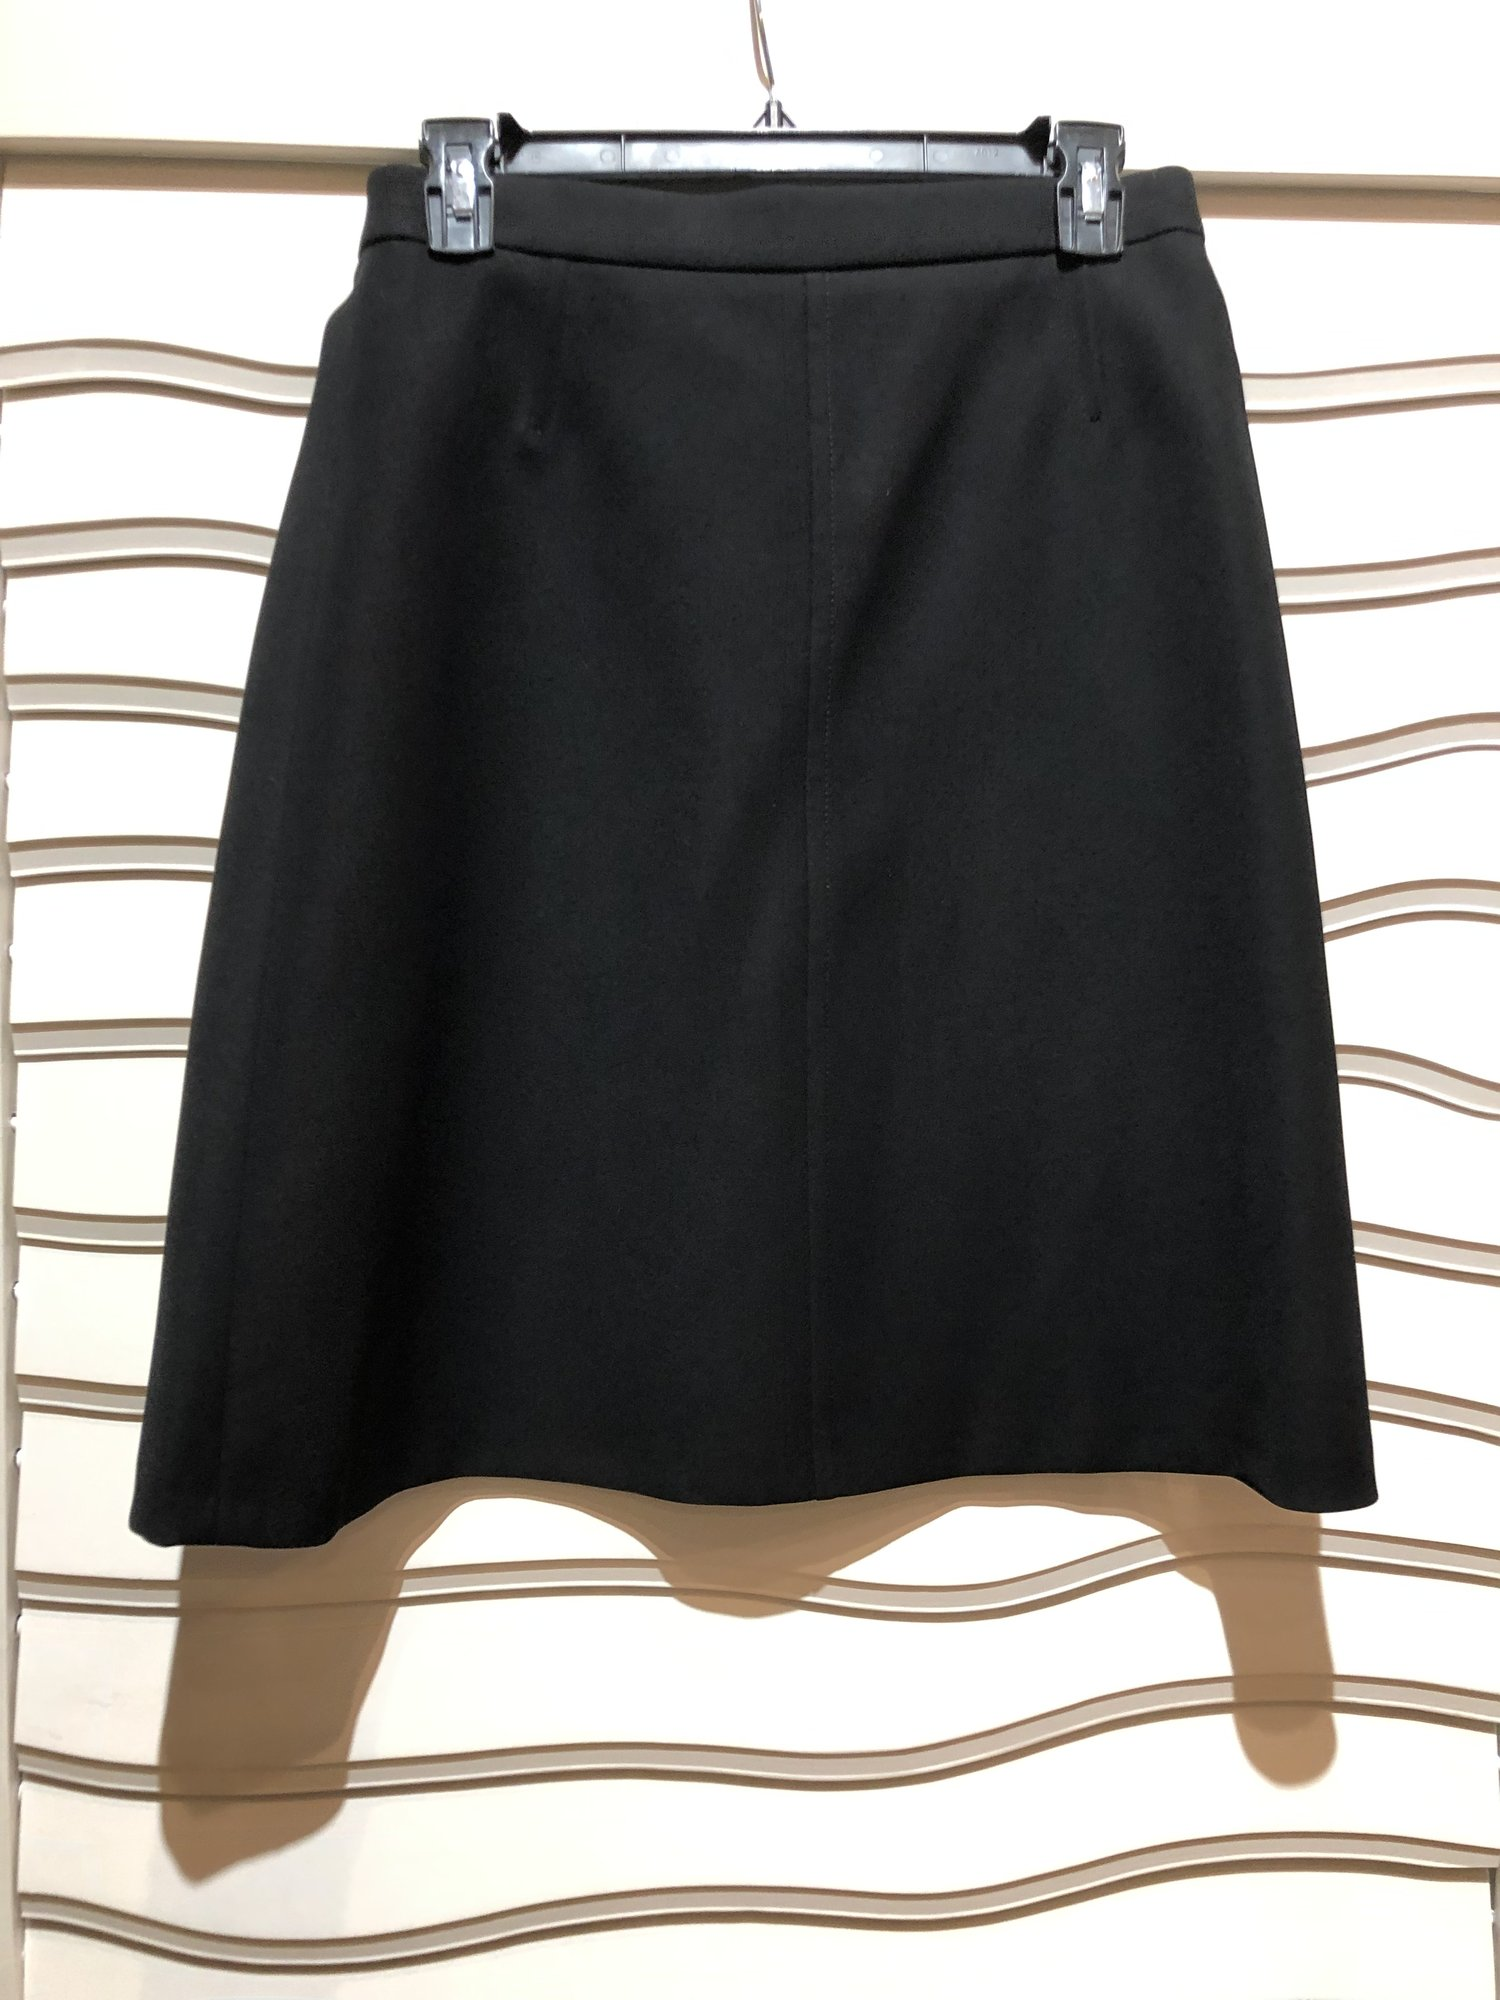 "Louis Vuitton Black Skirt, Black, Size: 38<br /> Mint condition. Waist measures 28"", length 22 1/4"".<br /> gold zipper in back."